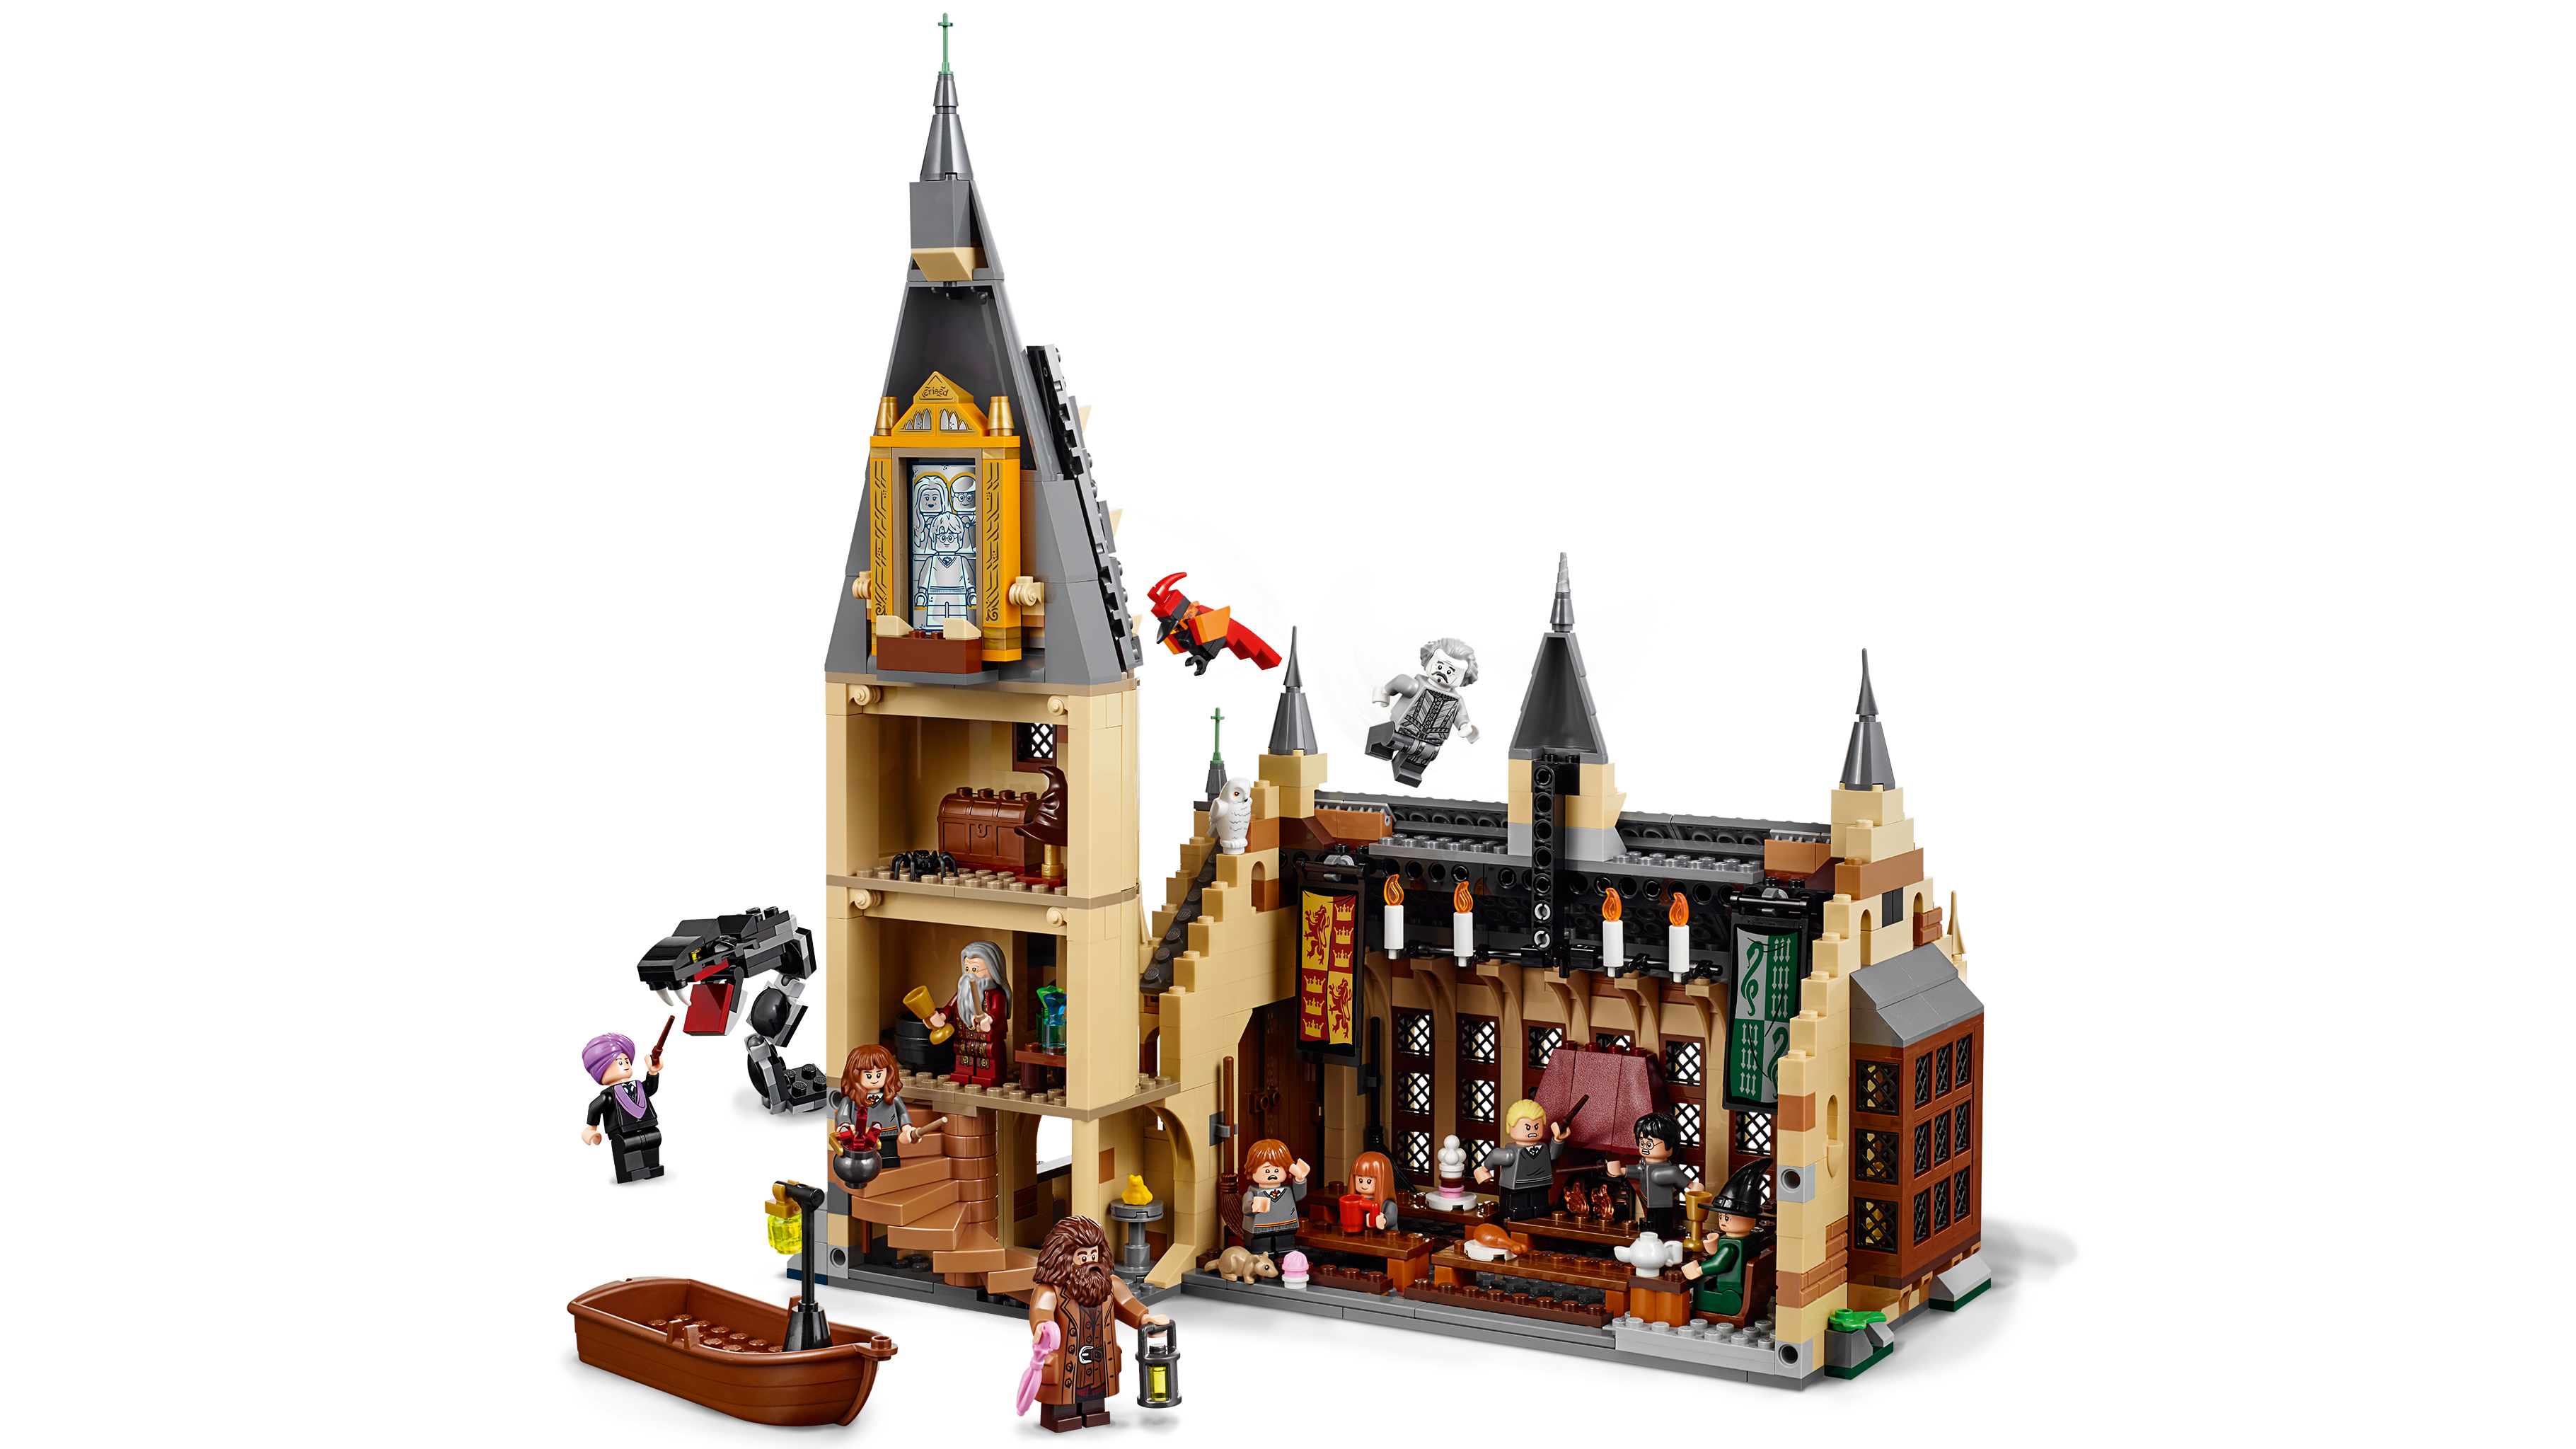 Lego Harry Potter 75954 Hogwarts Great Hall